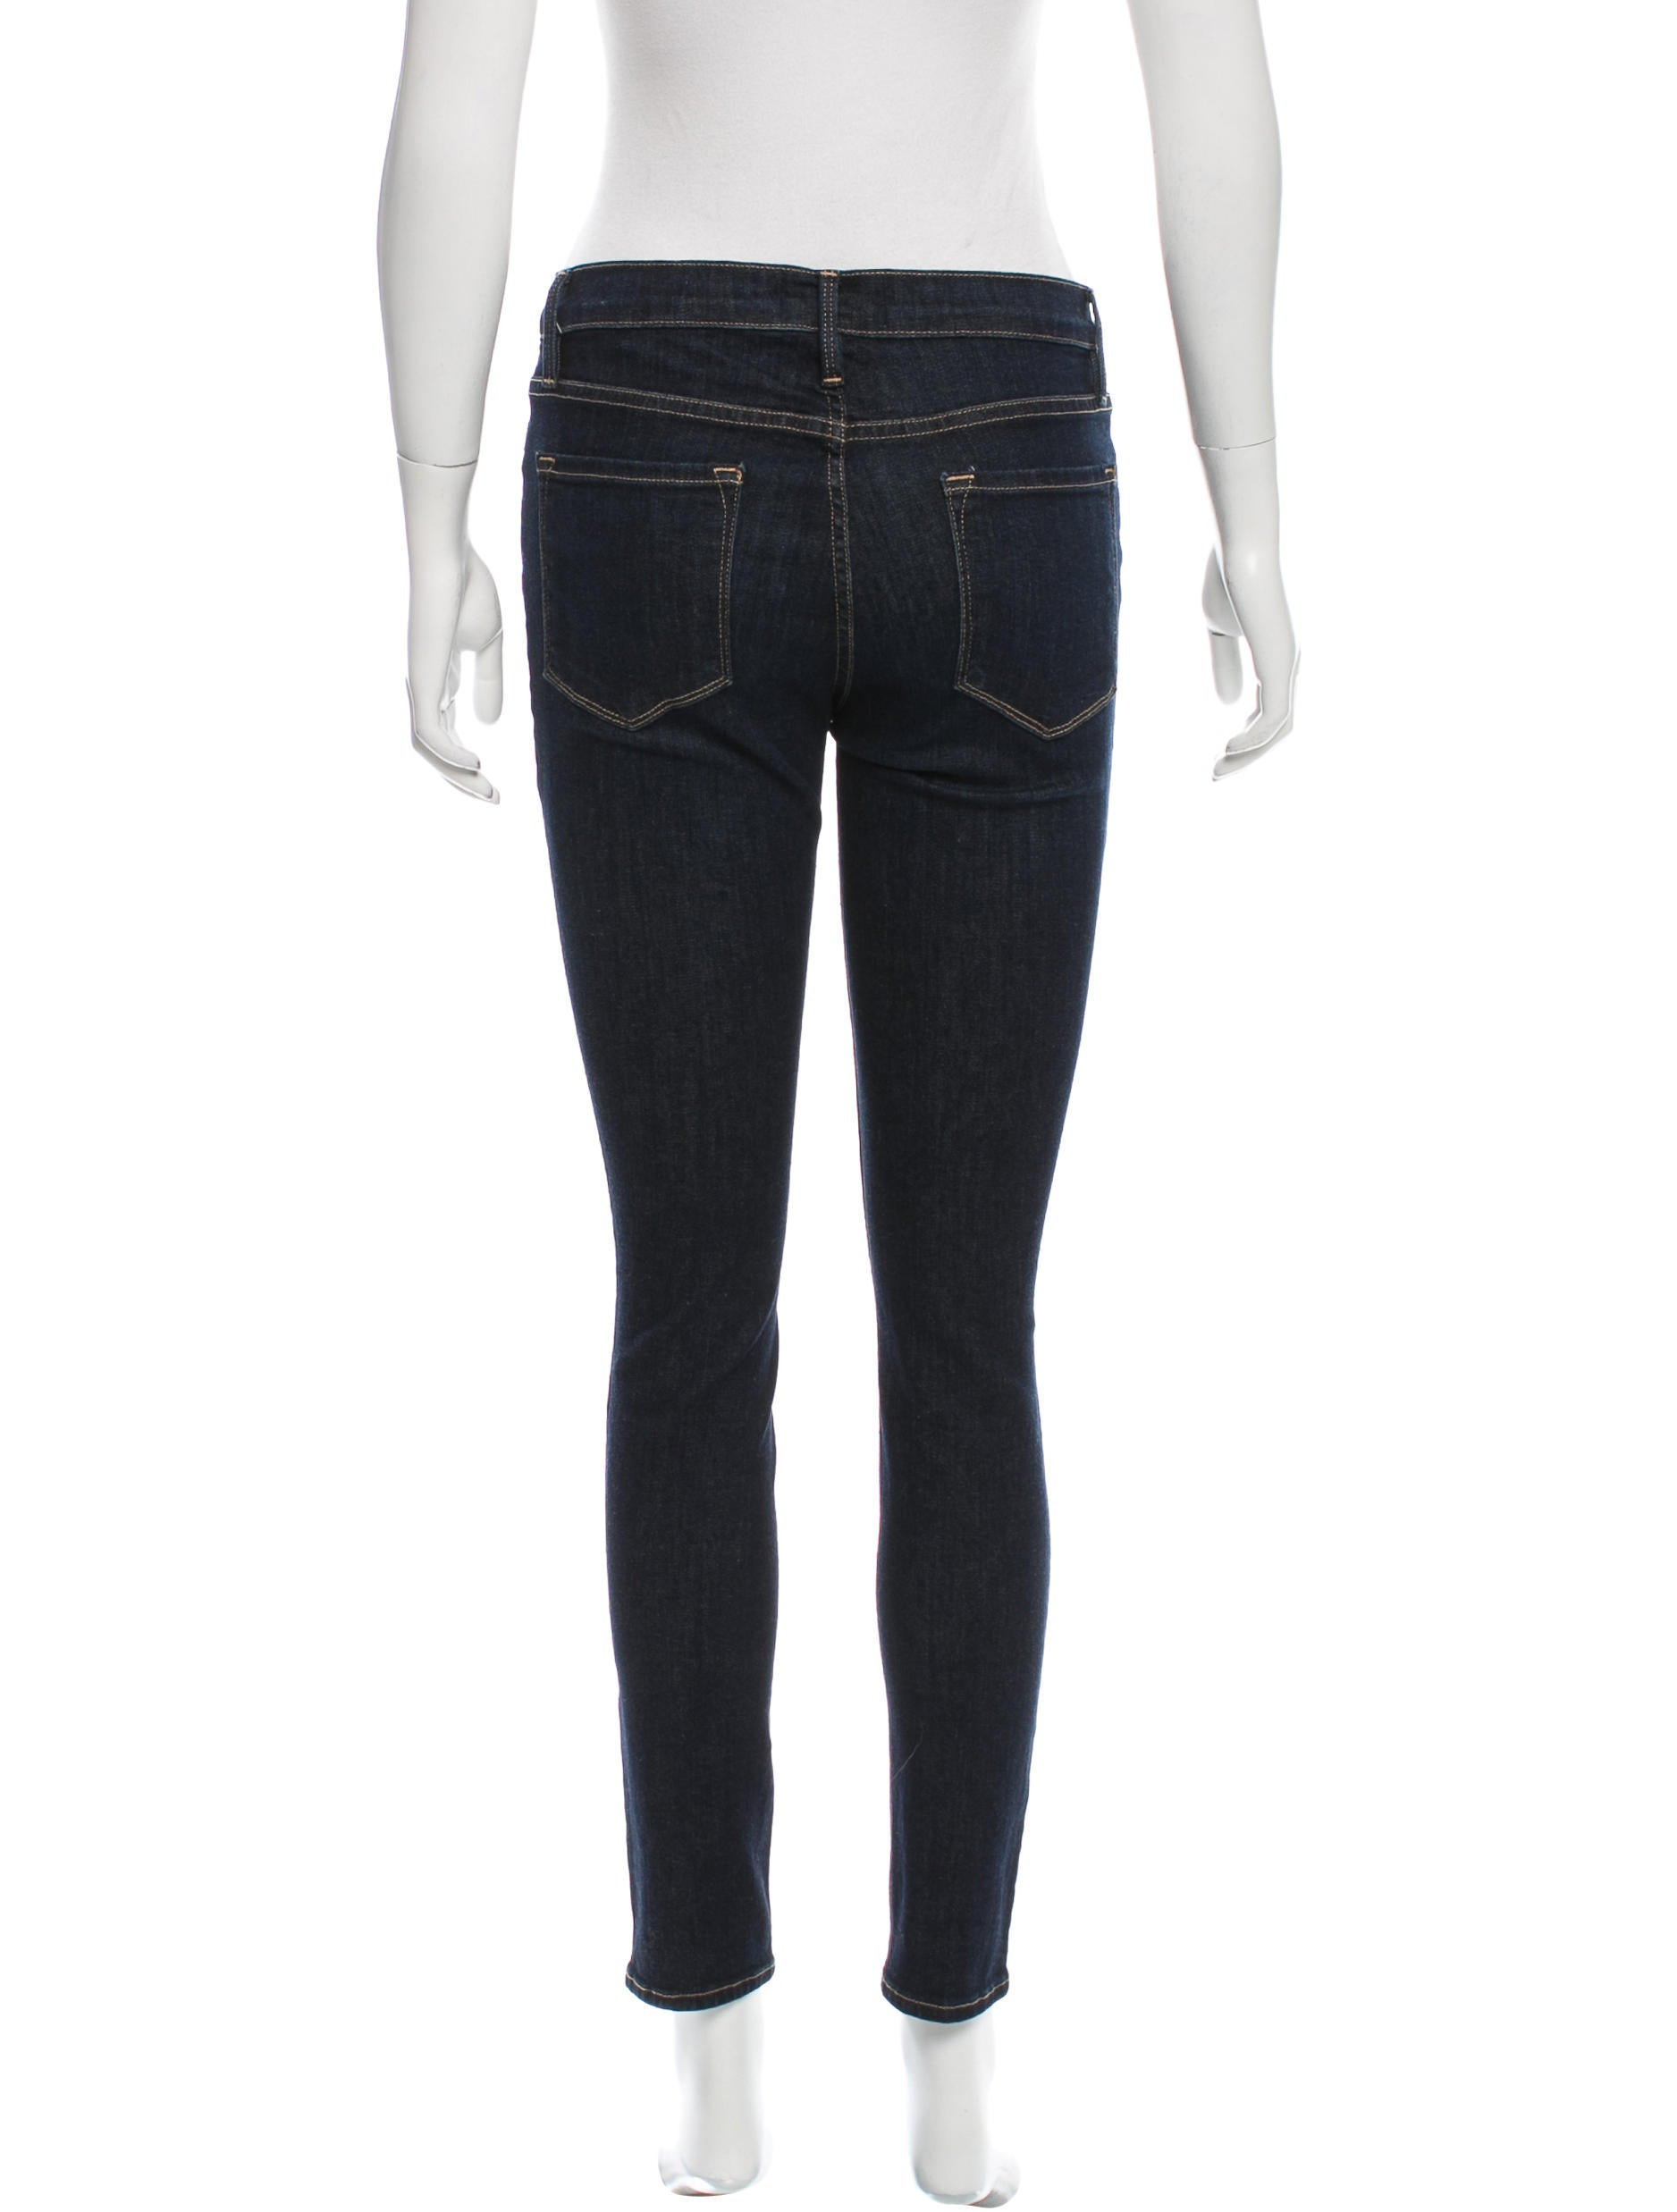 With skinny jeans in petite sizes from Old Navy, you'll have the same number of stylish options that standard-sized women have, all brilliantly tailored to fit your unique frame. No more cuffing your ankles and settling for jeans that are a little too baggy in the wrong places.